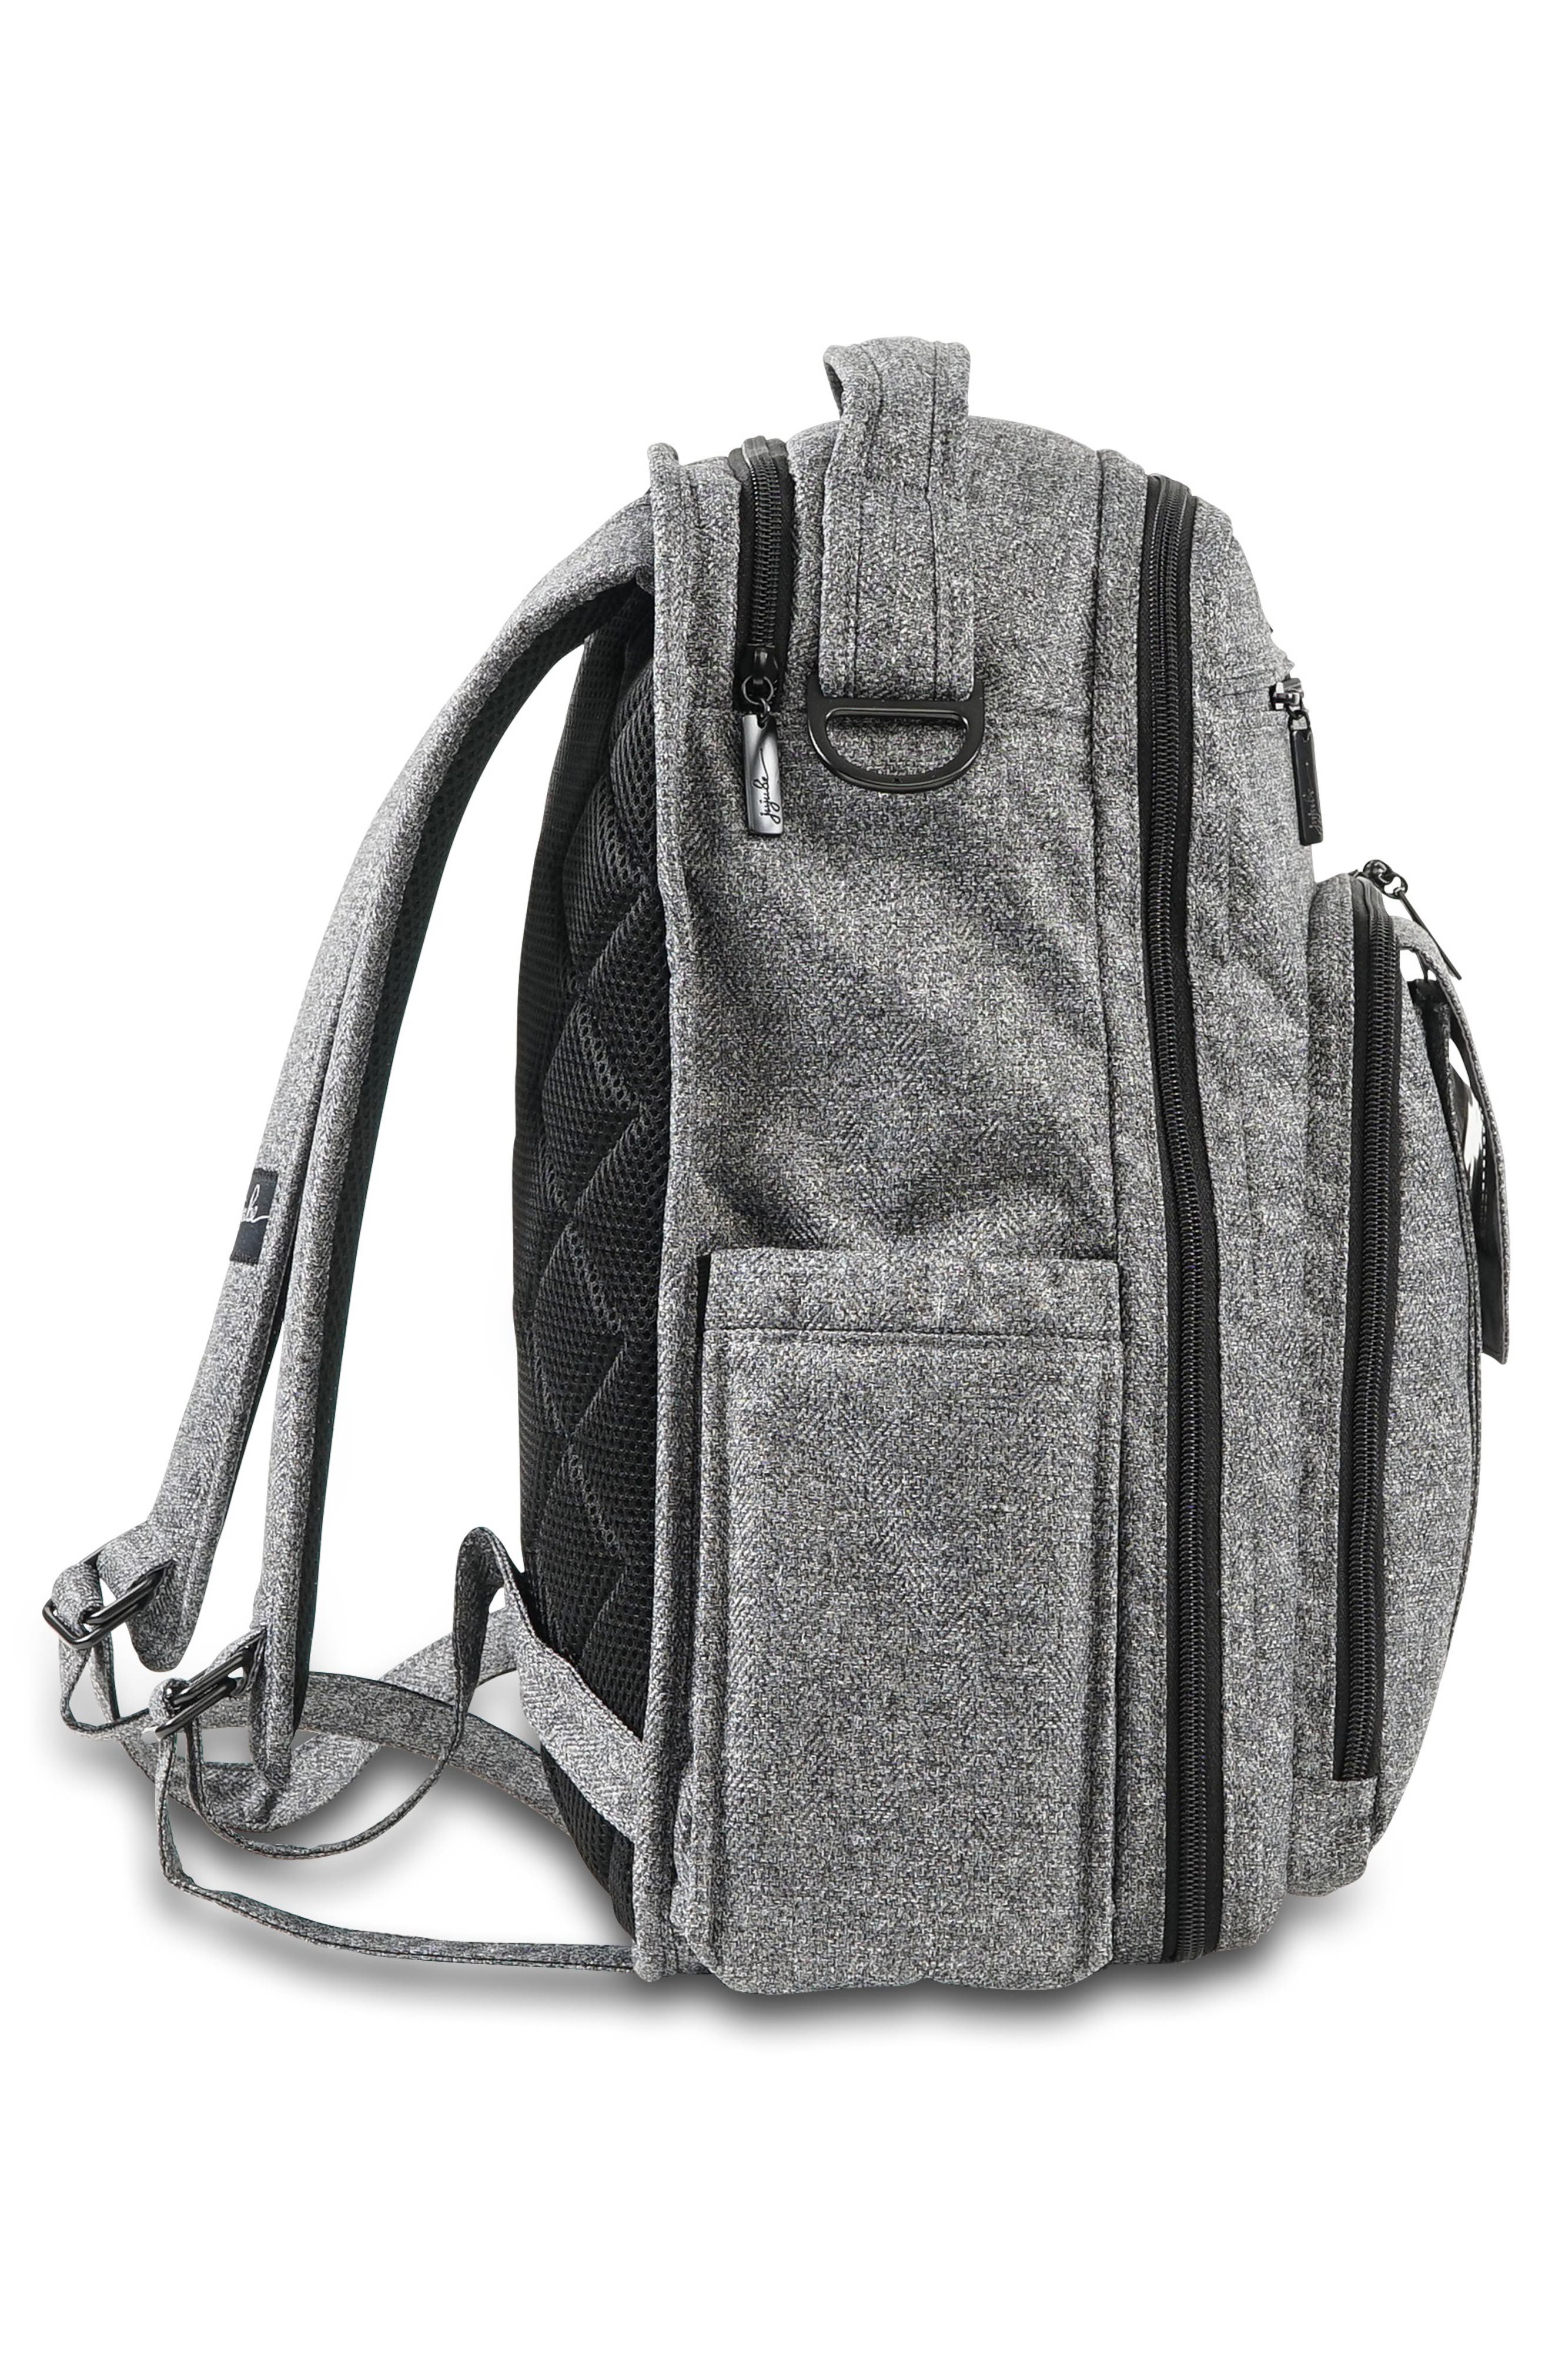 'Be Right Back - Onyx Collection' Diaper Backpack,                             Alternate thumbnail 4, color,                             GRAY MATTER